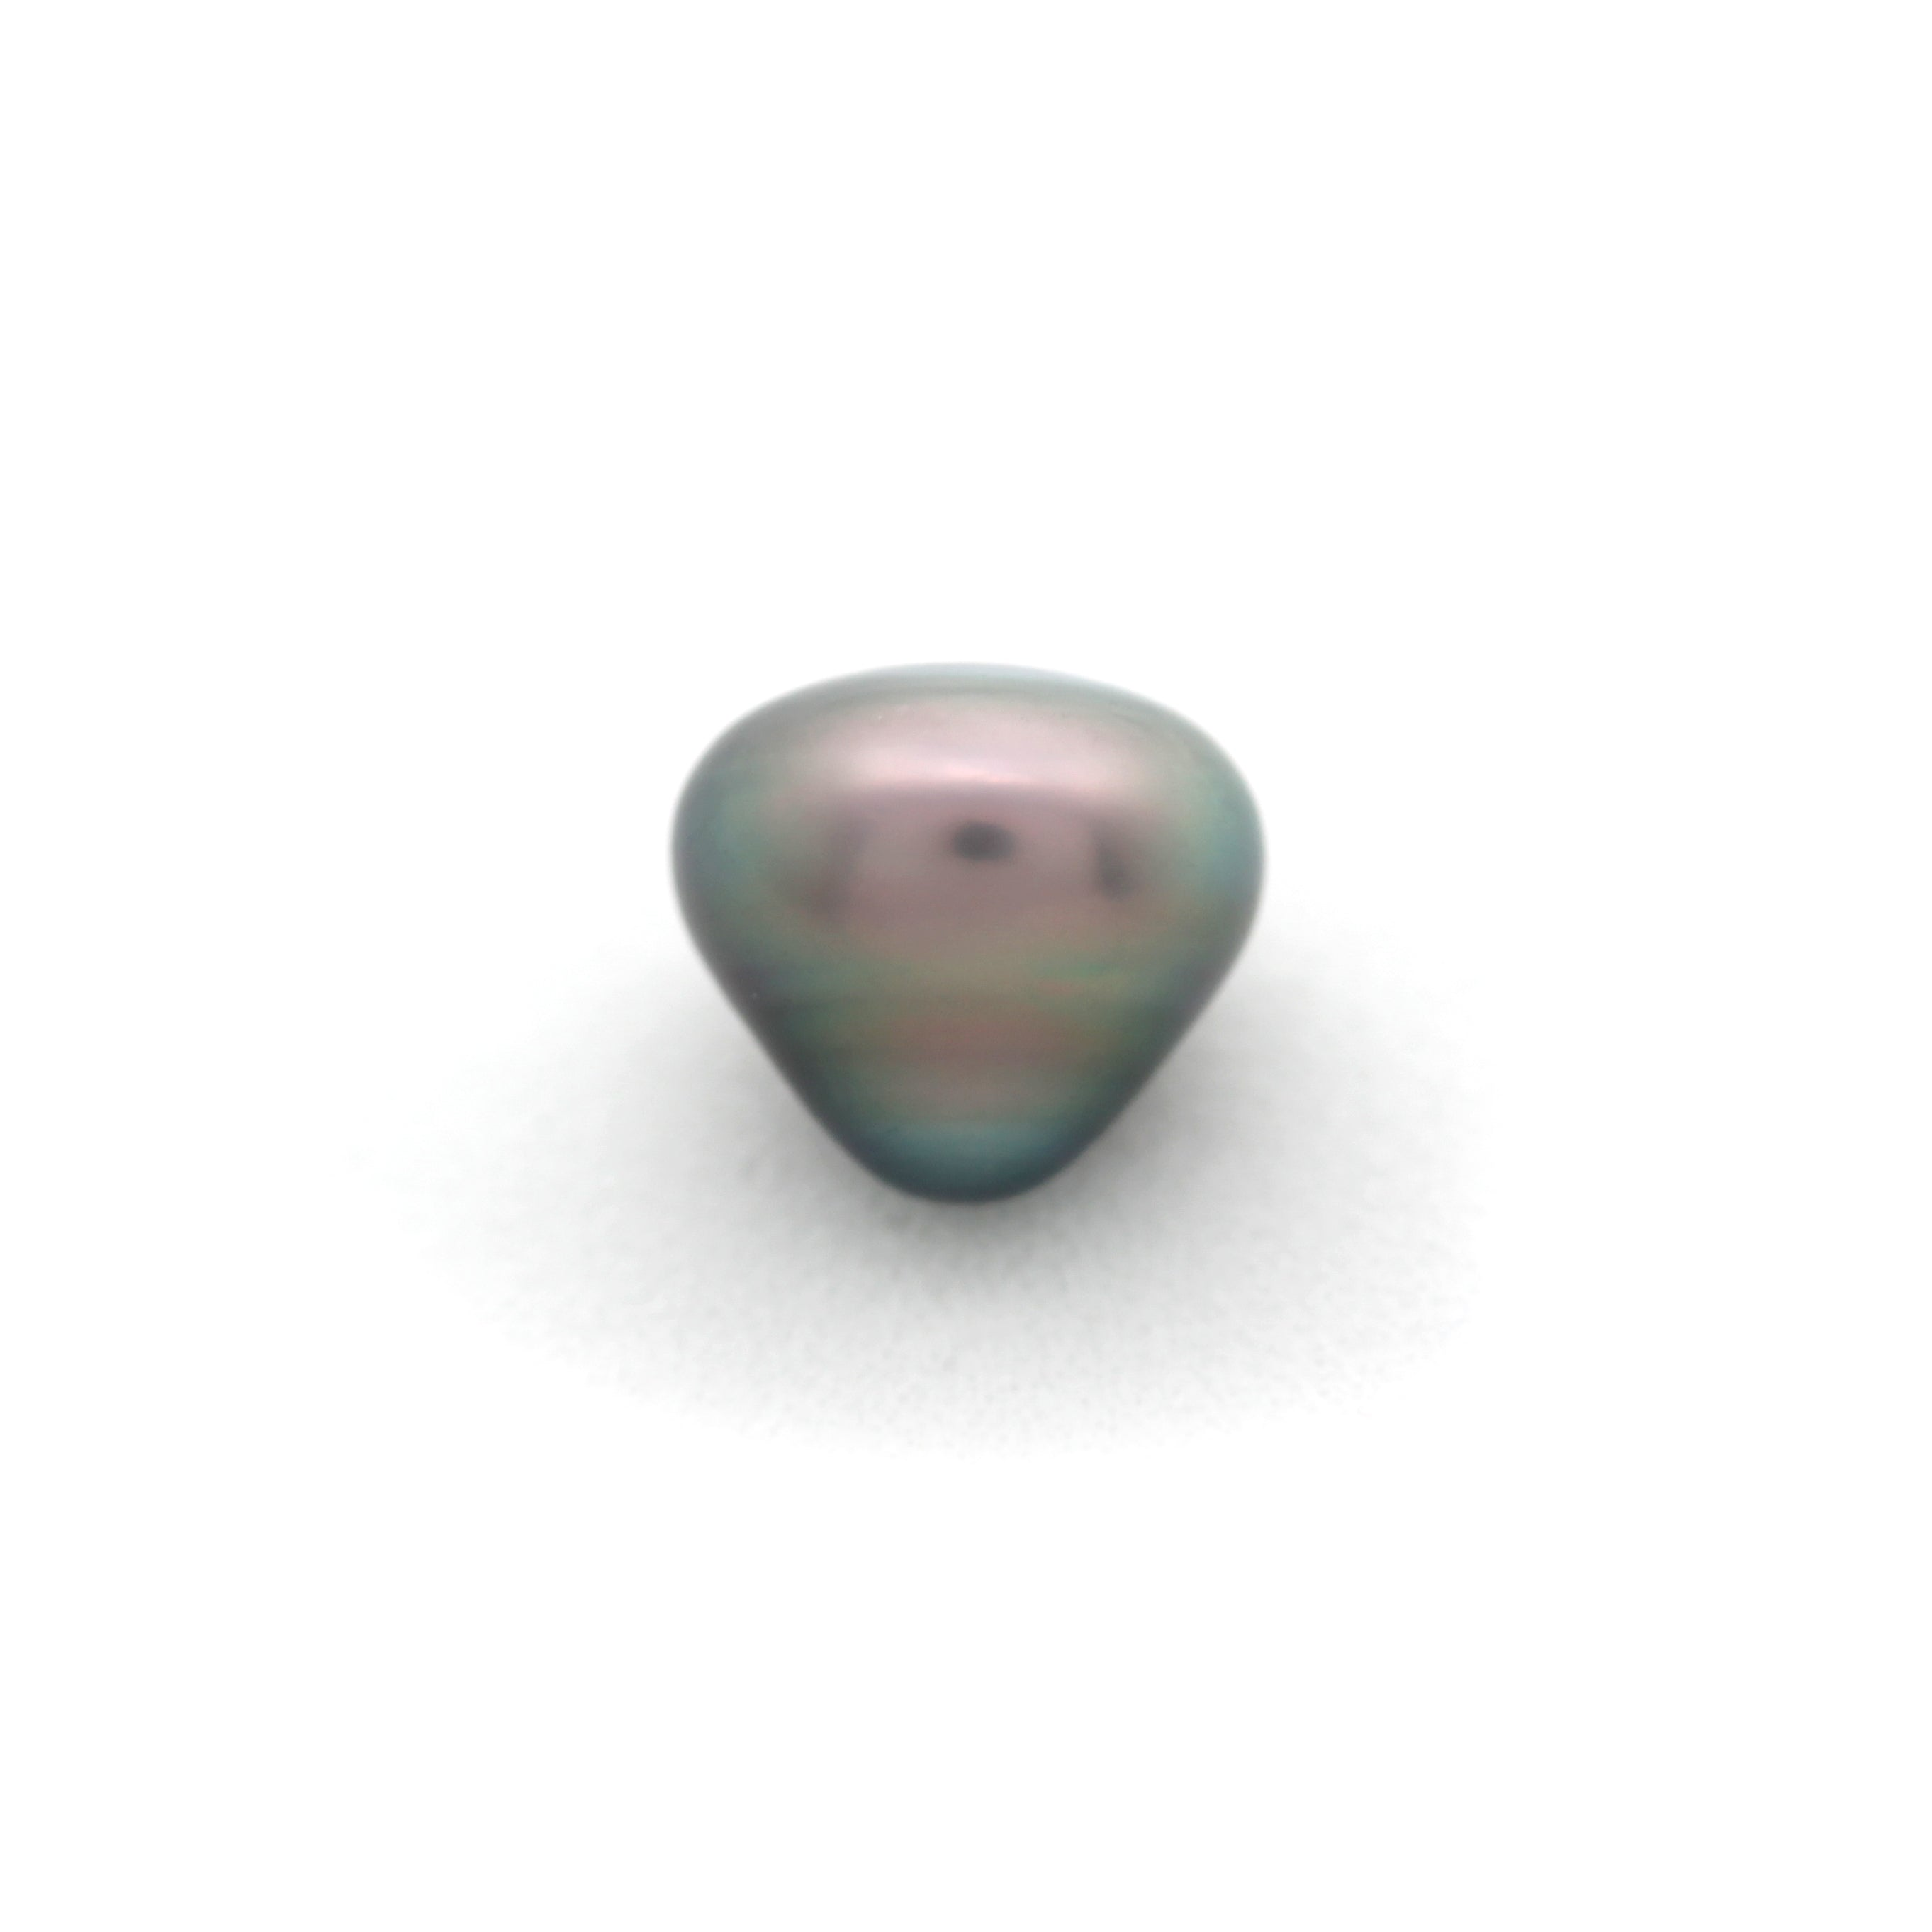 Baroque KISS shaped 9.75 x 10.7 mm Cortez Pearl